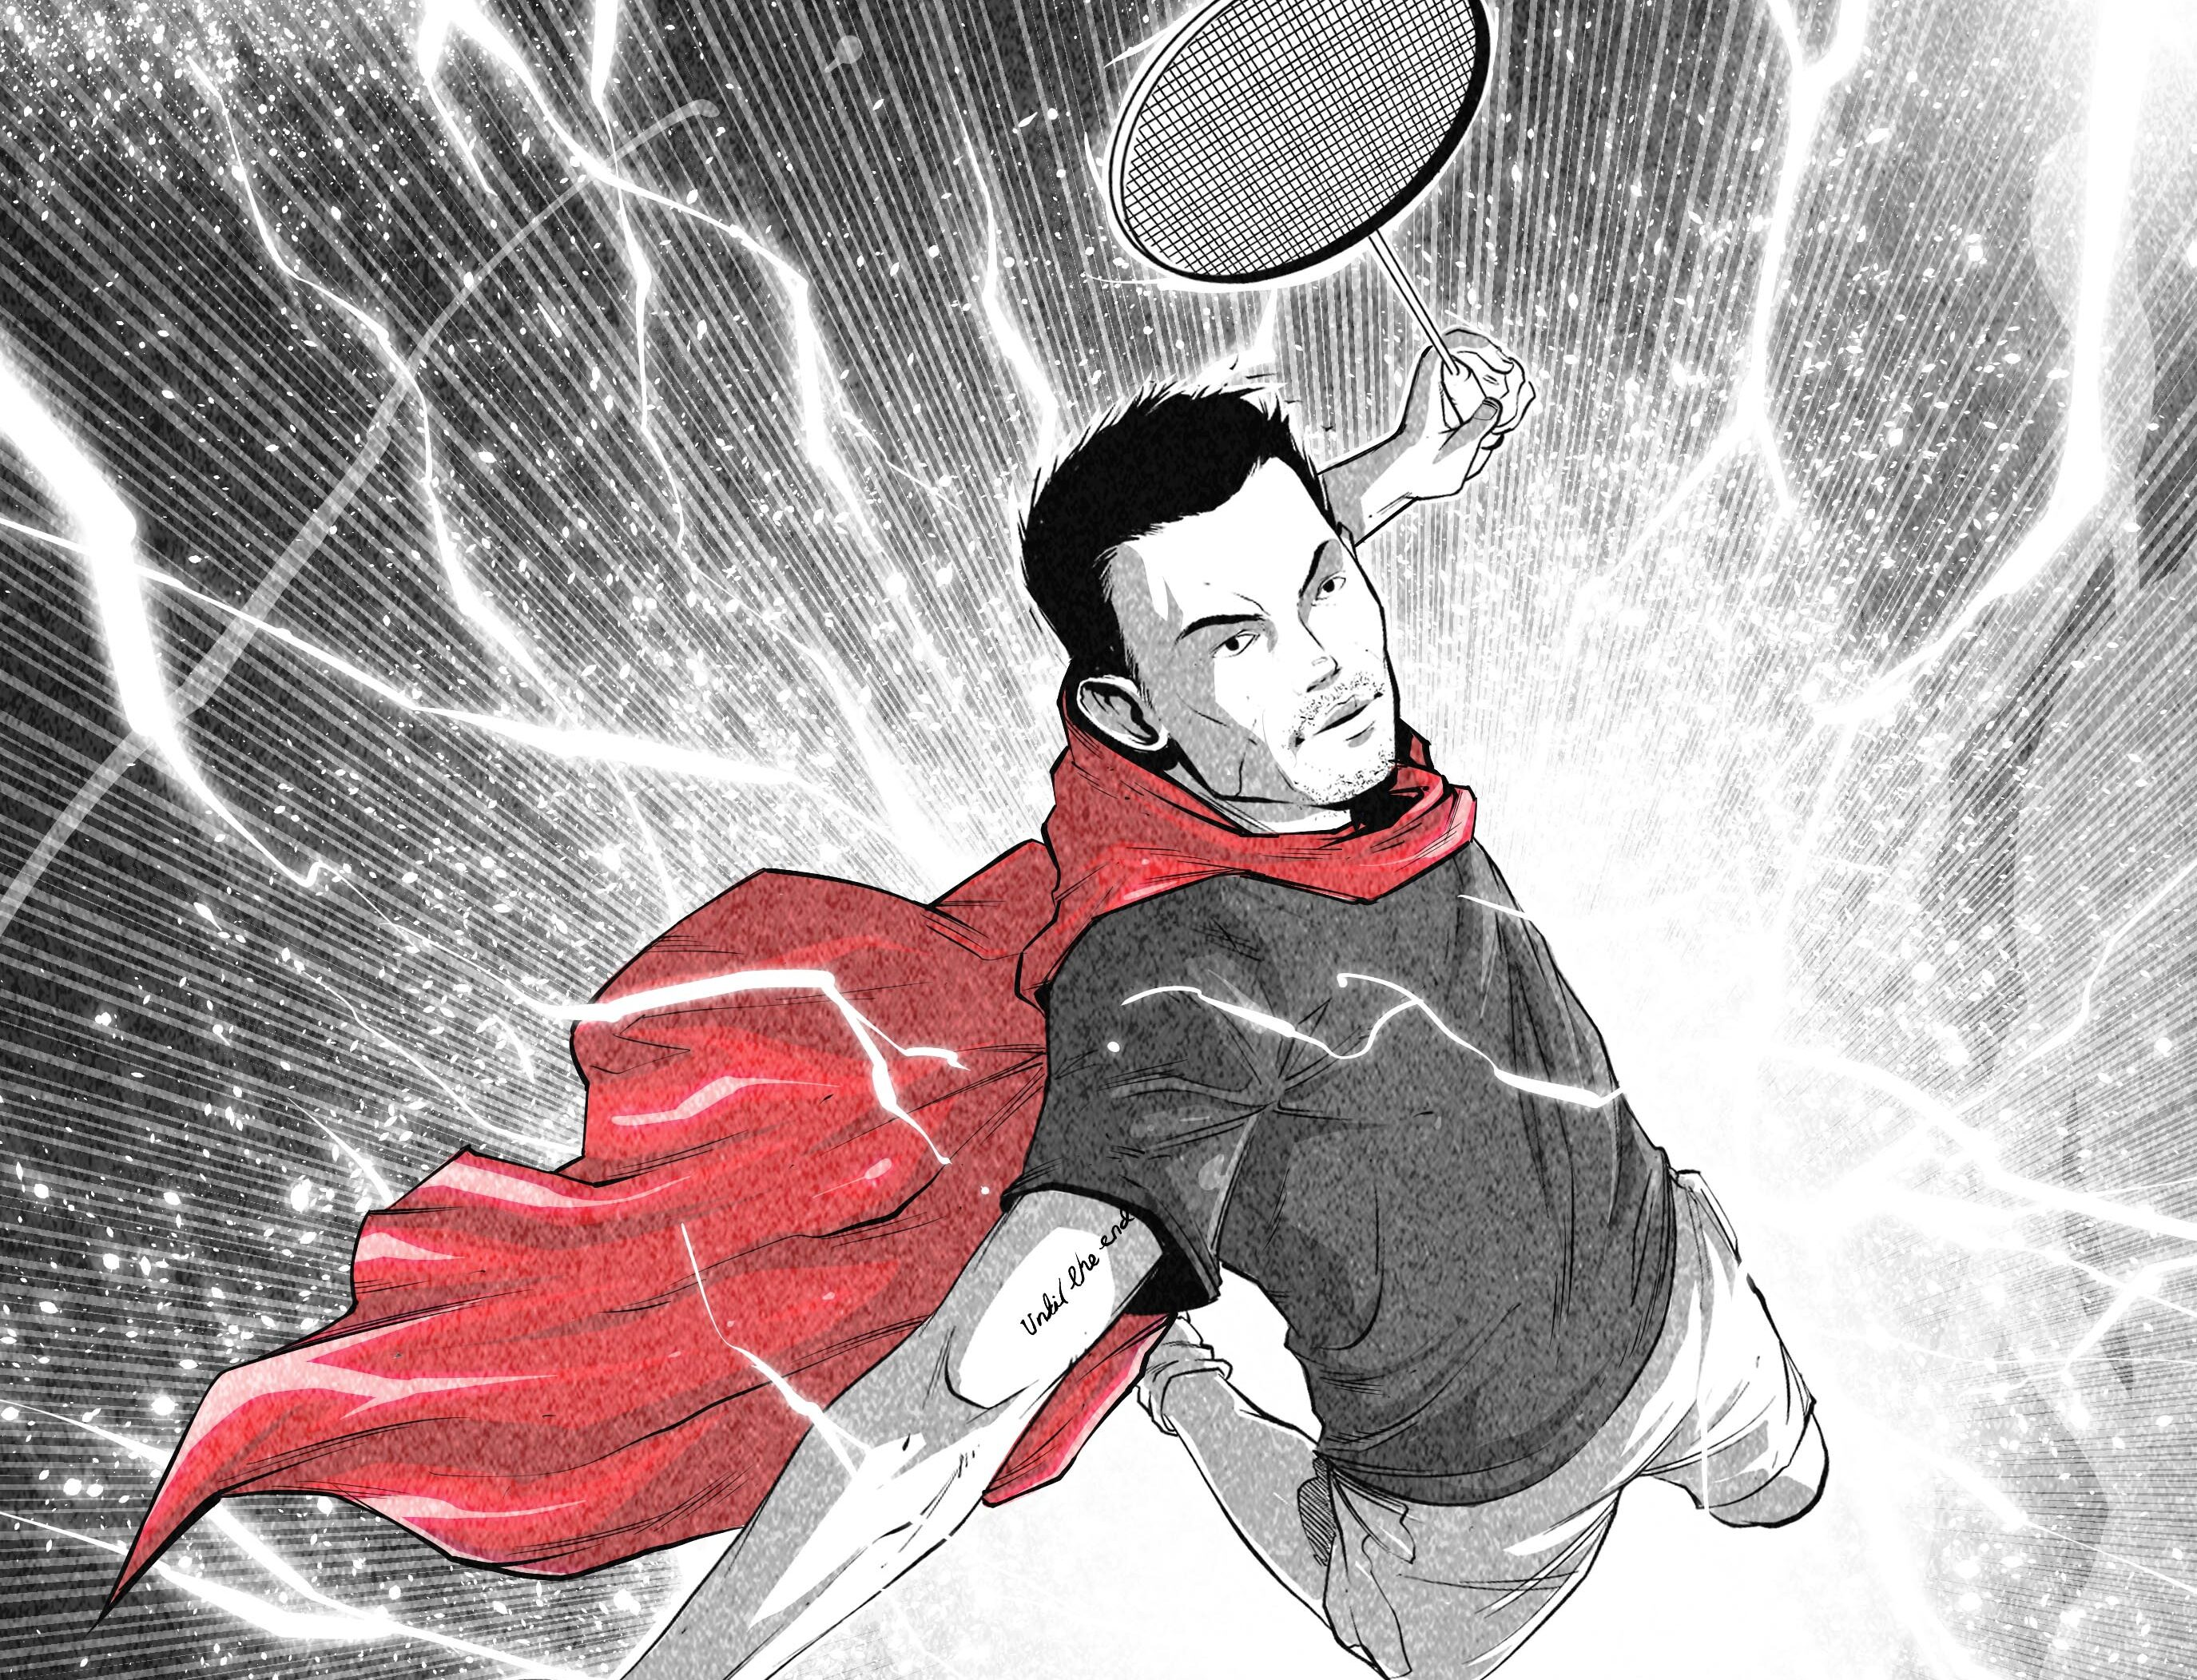 Lin Dan: A manga-inspired re-telling of the two-time Olympic champion's life